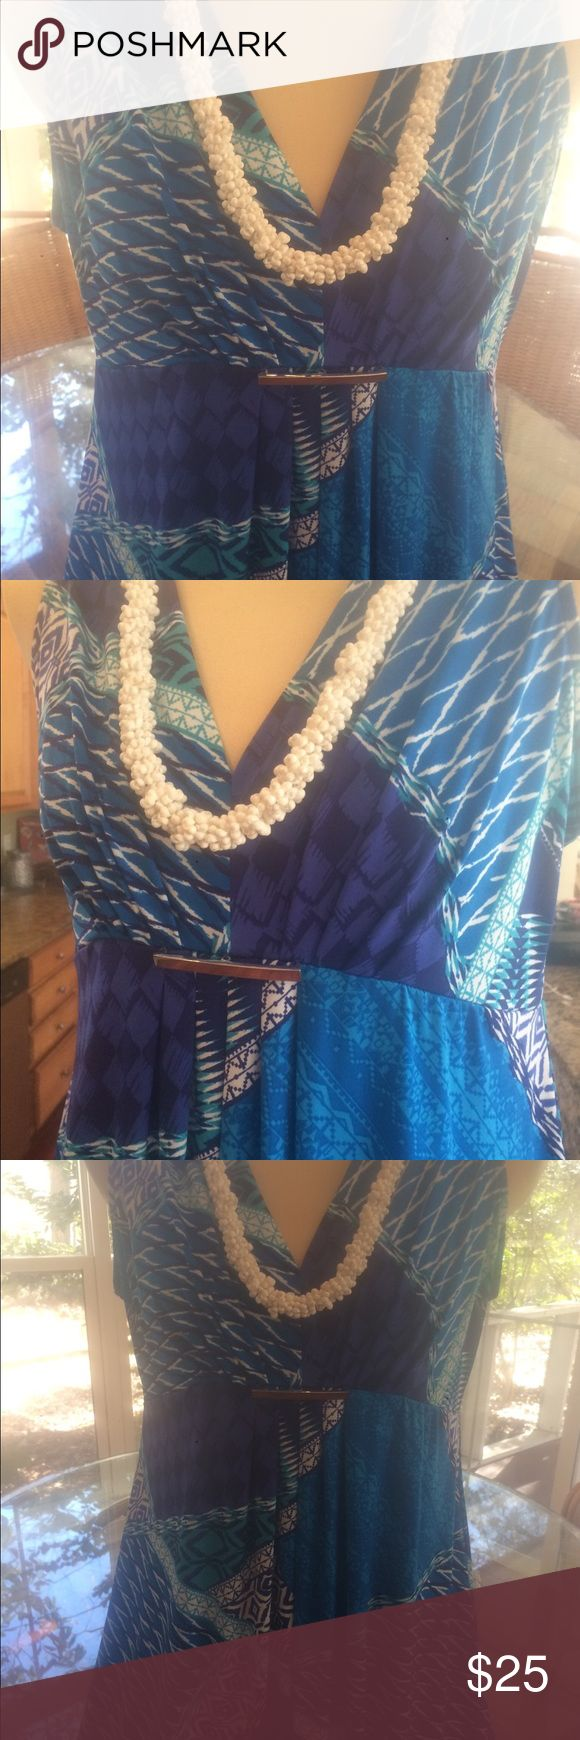 """""""CHICO'S Tropical Long Floor- Length Dress This Tropical Dress by  """"CHICO's"""" is perfect for a cruise and easy for traveling! Size 2 (which fits size 10-12 perfectly) is so comfortable and can be worn as Casual attire or for a Dressy occasion can just add some jewelry!!  Retails for $89 Chico's Dresses Maxi"""